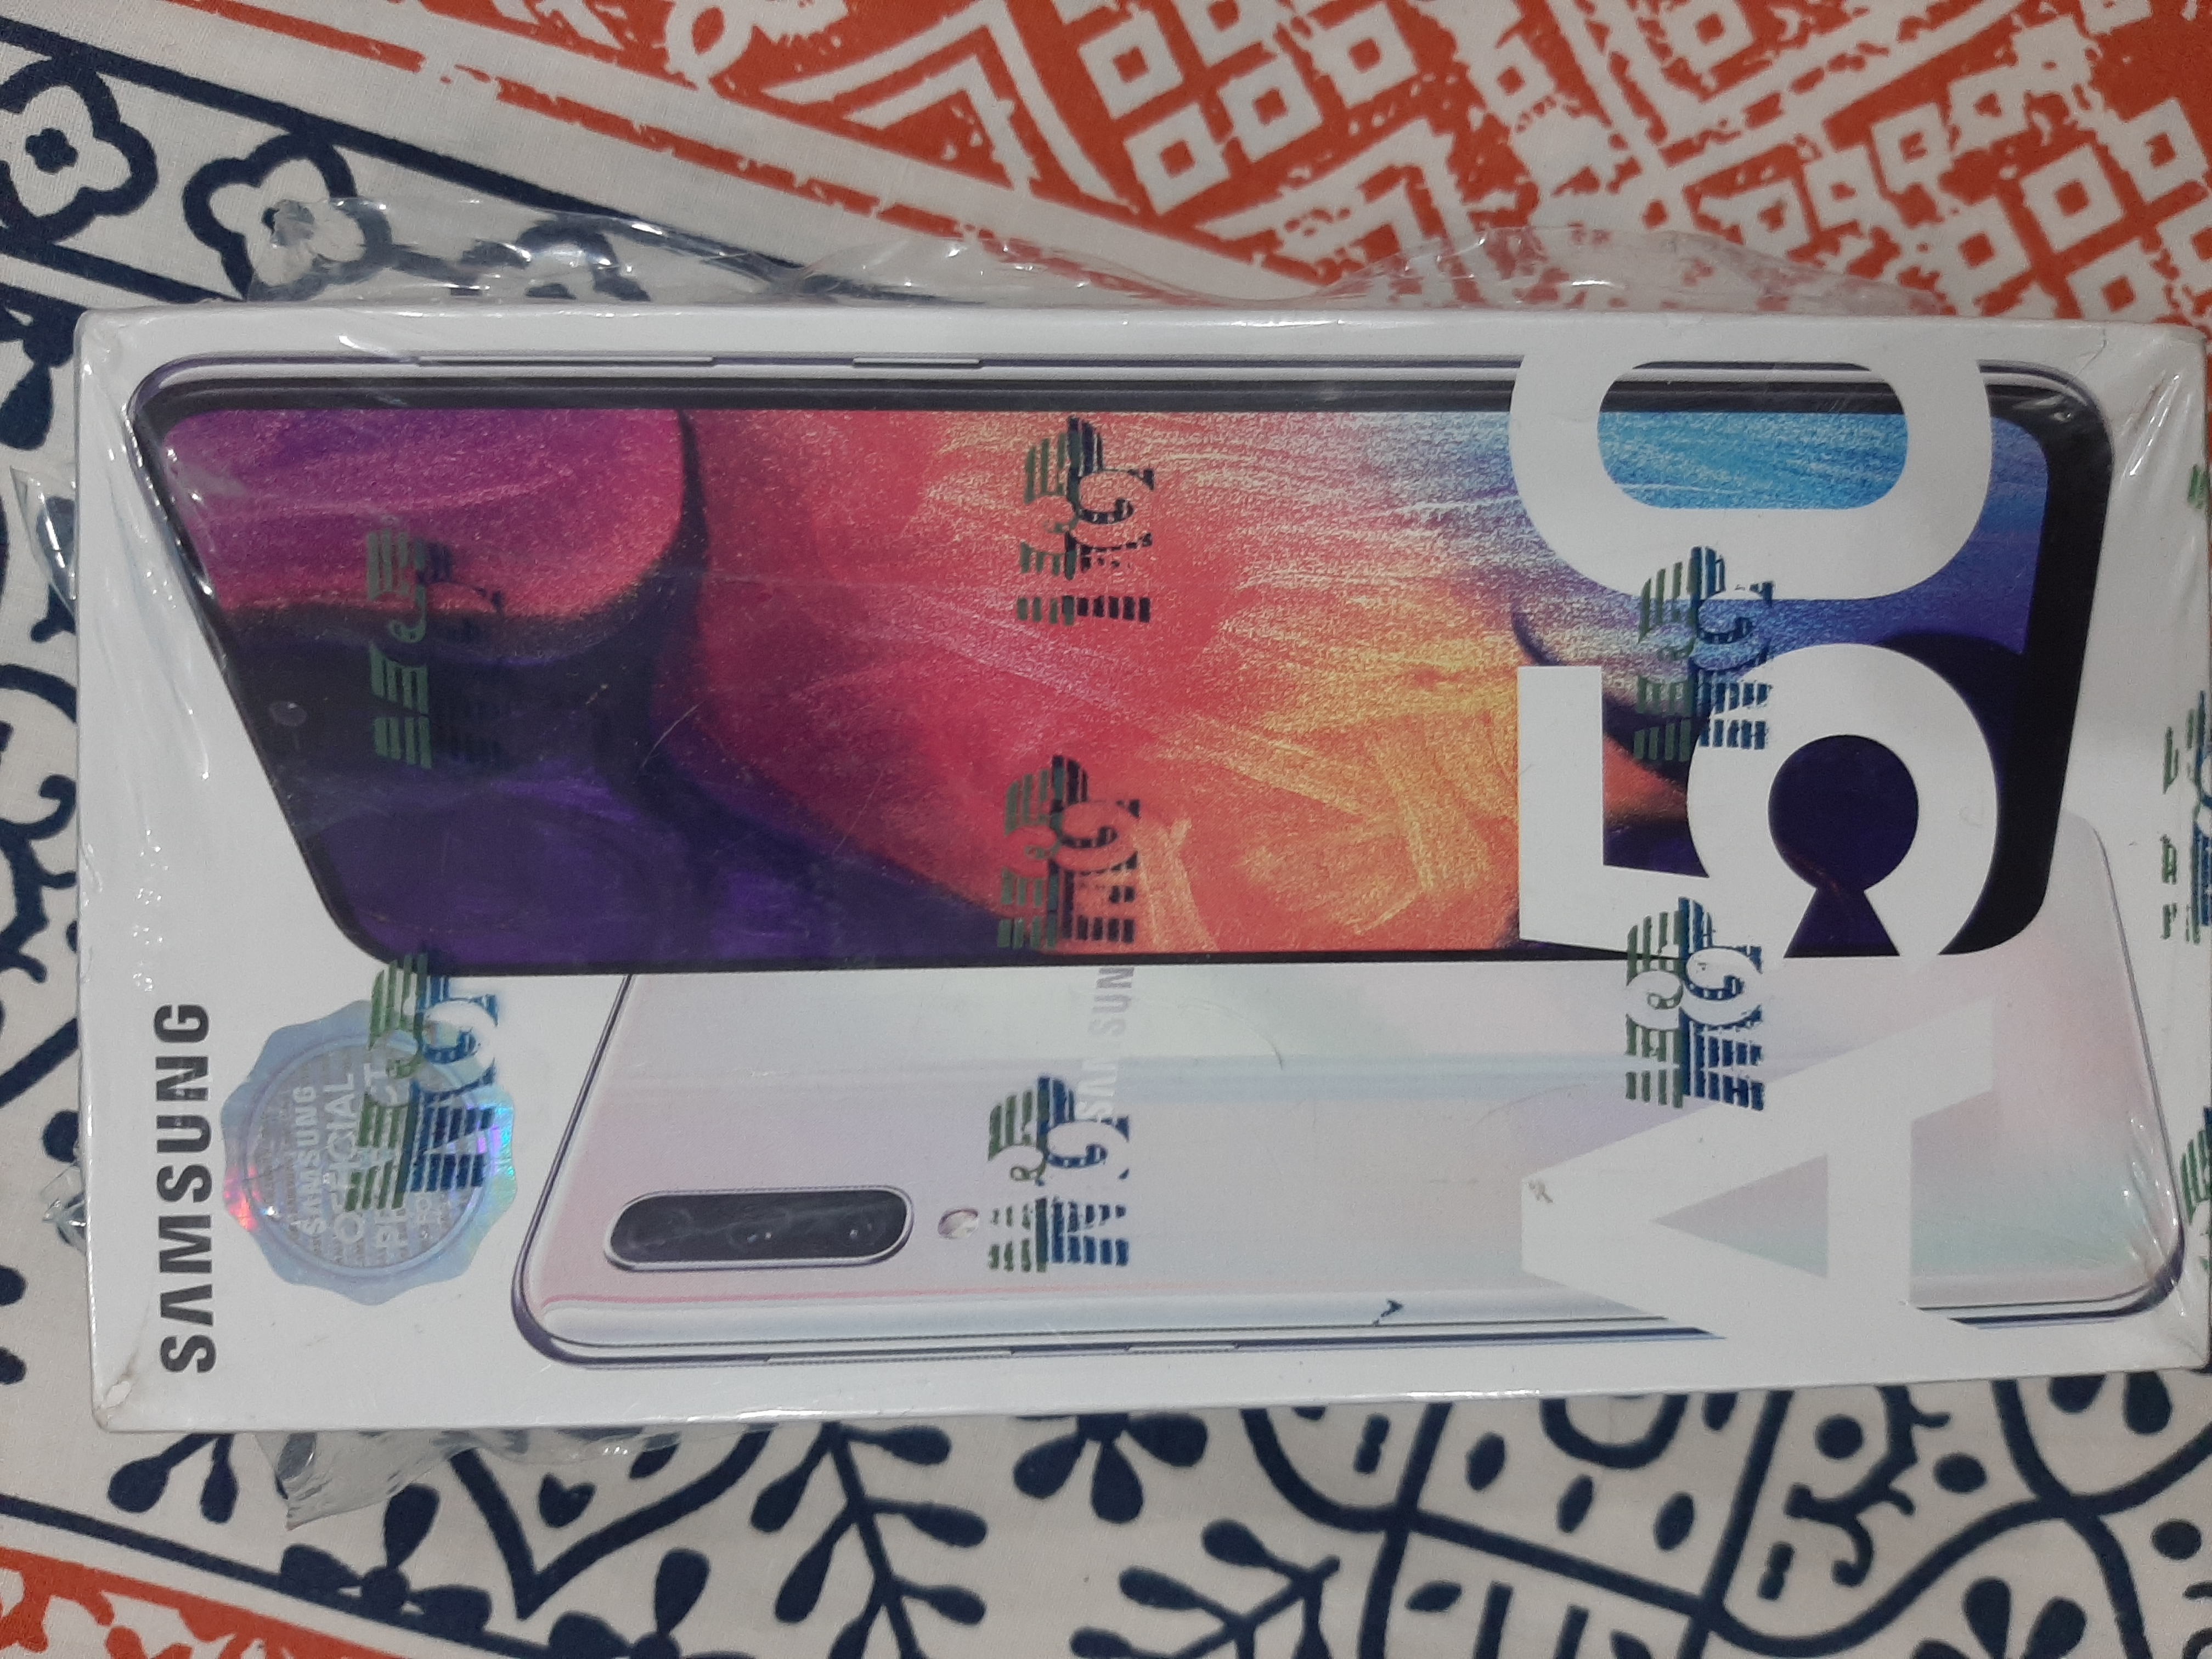 Galaxy A50 For Sale Condition 10 /10 - photo 1